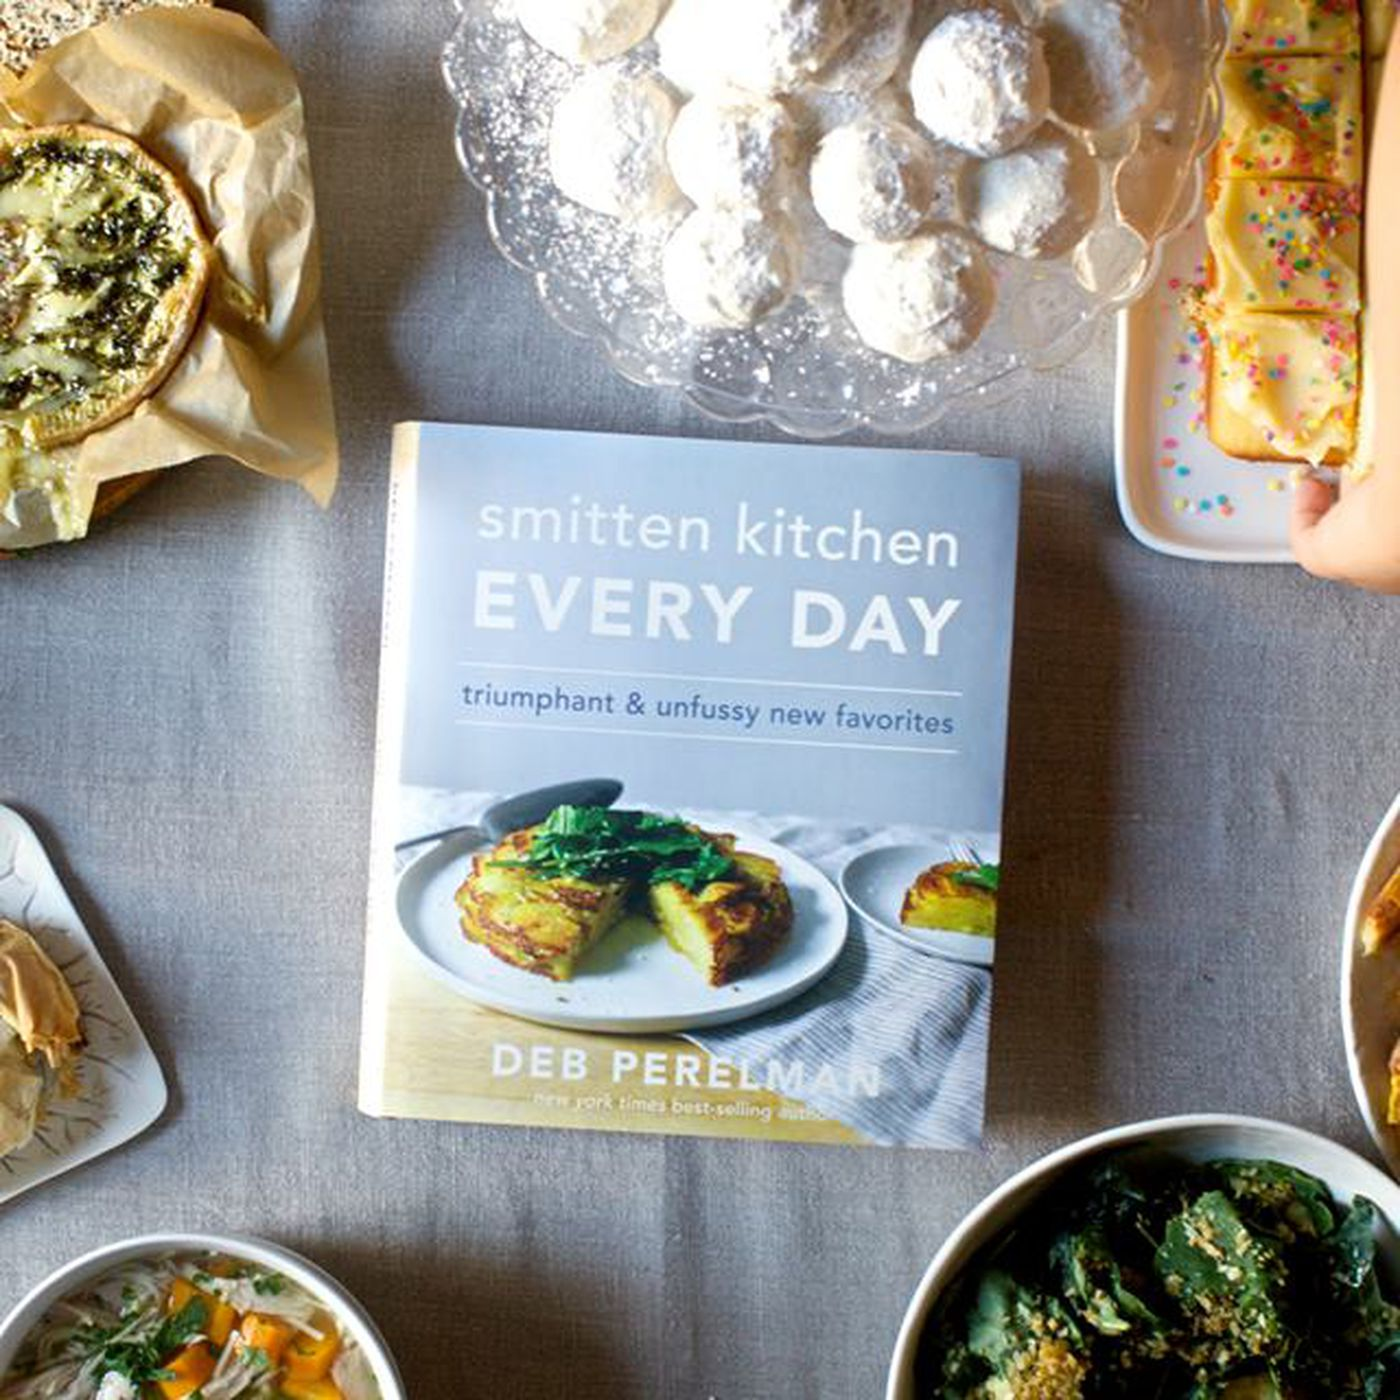 Outstanding Inside Smitten Kitchen Every Day The Second Cookbook From Funny Birthday Cards Online Barepcheapnameinfo